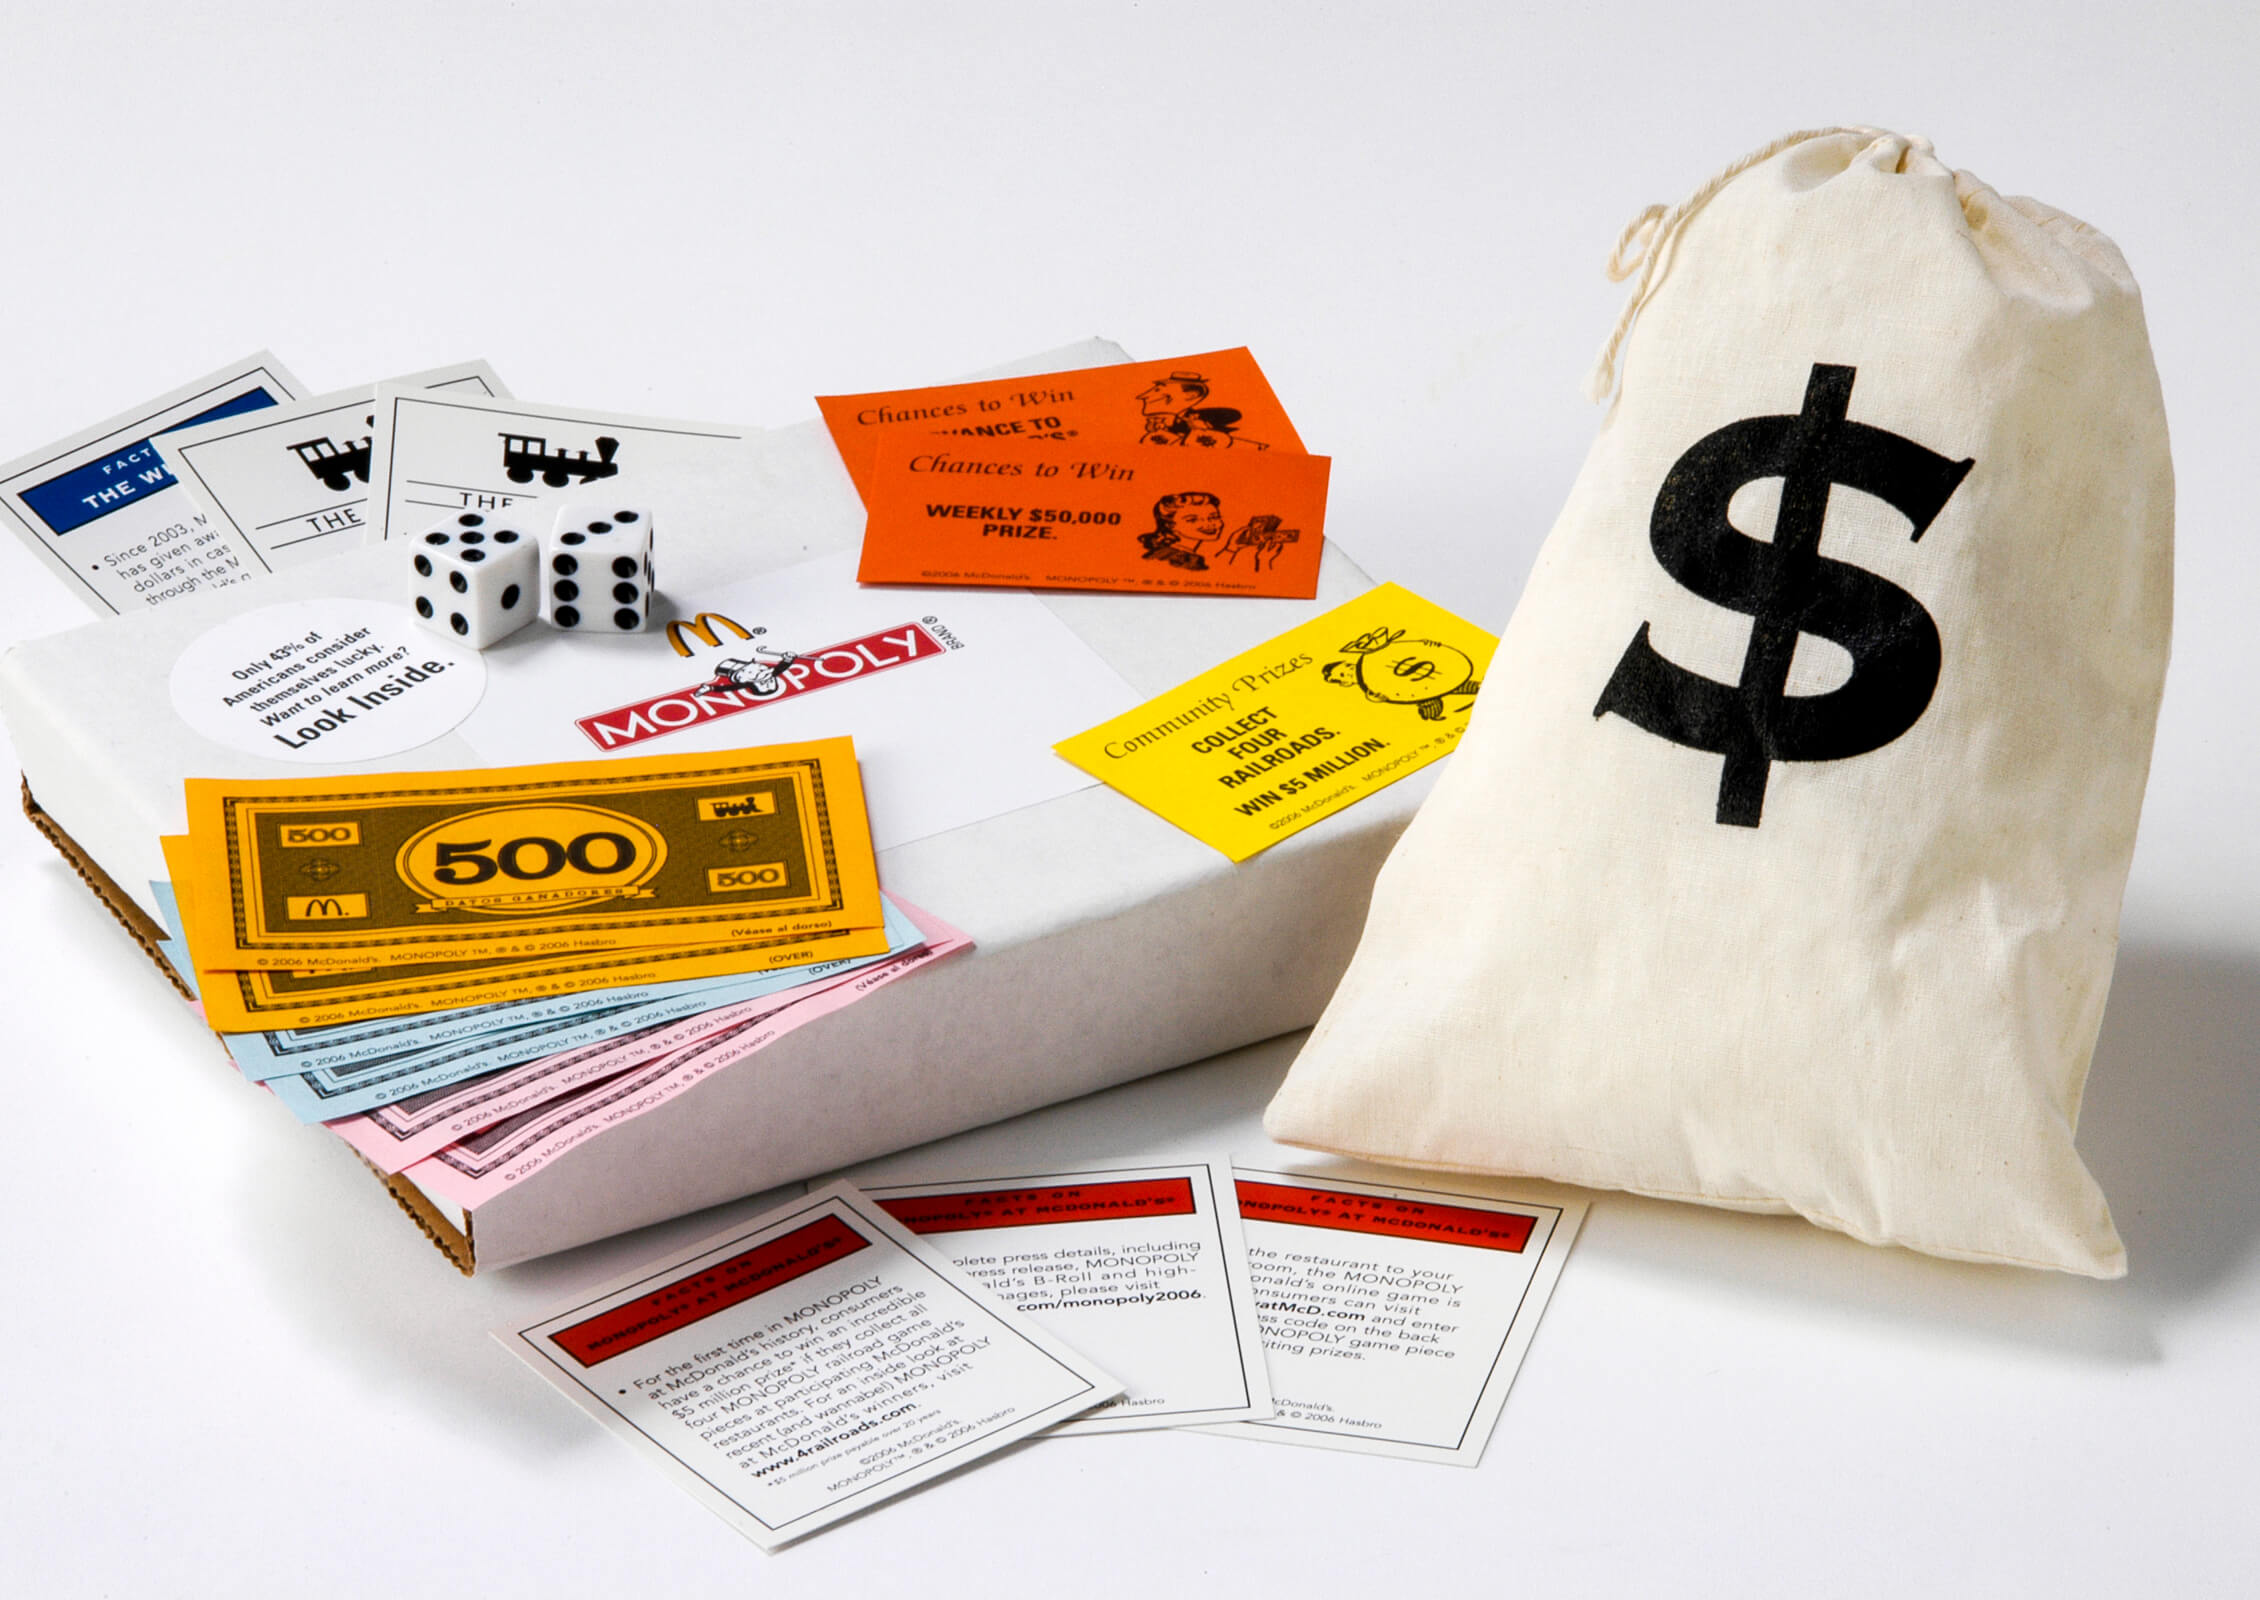 McDonald's Monopoly Press Kit image